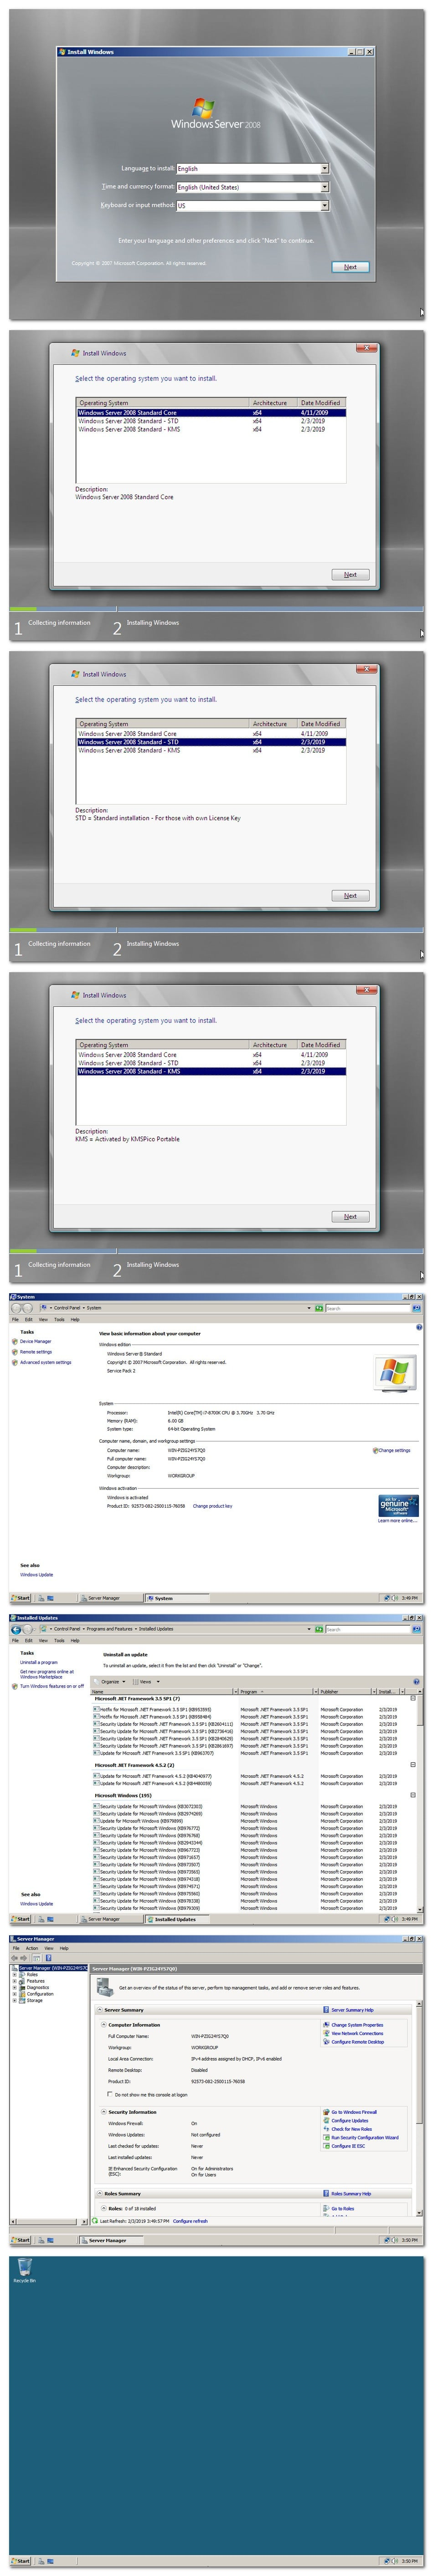 windows server 2008 r2 image download